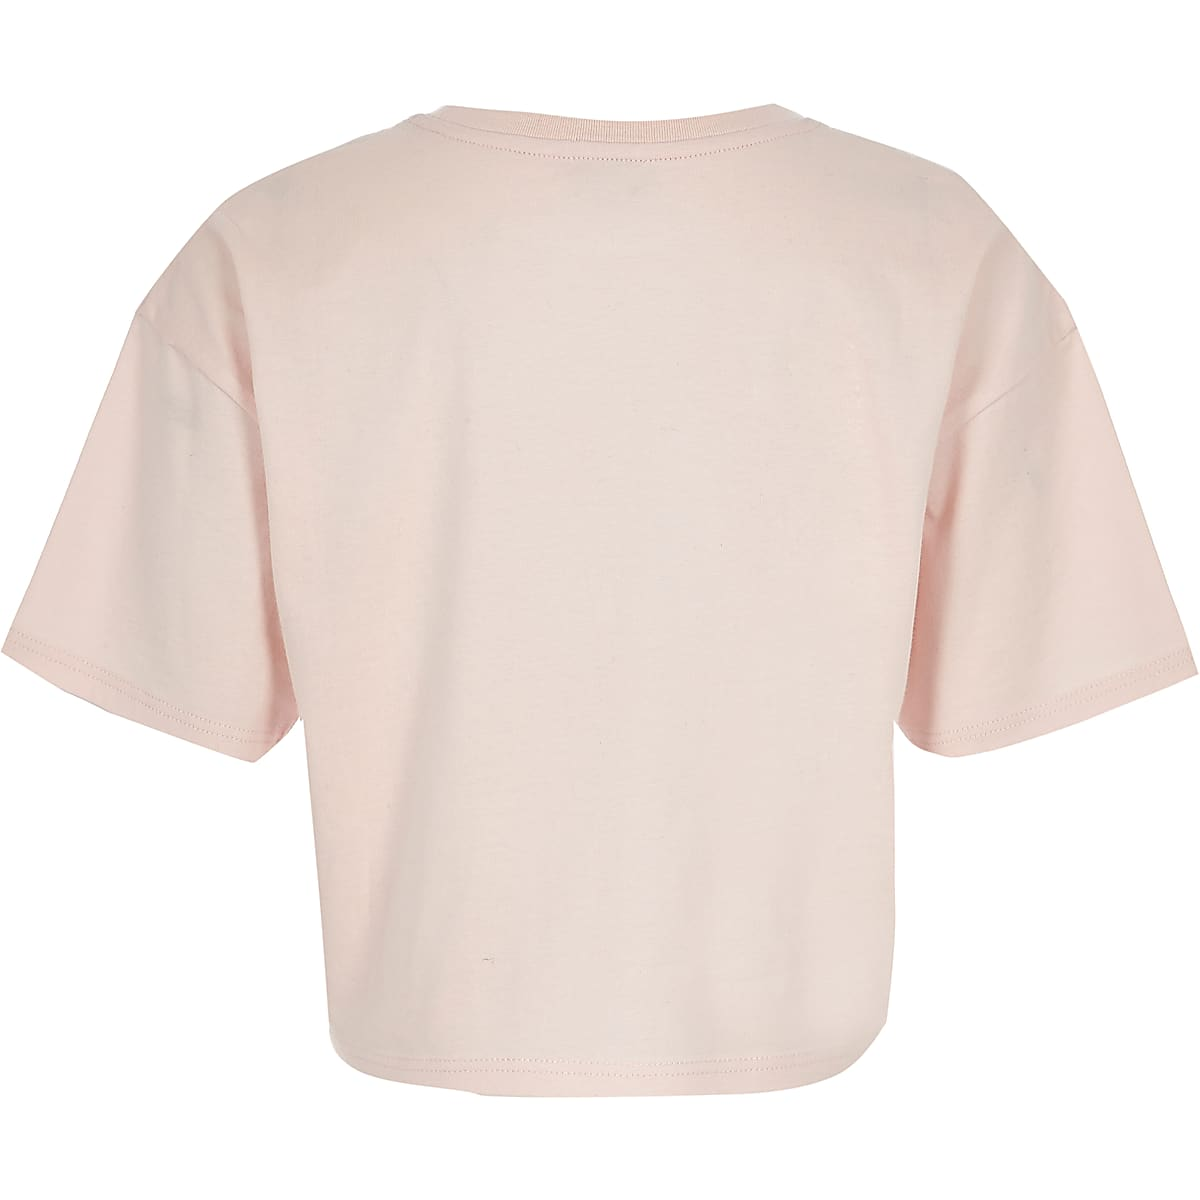 e4f74e8ae380e Ditch the Label – T-shirt court rose pour enfant - Crop tops - Tops ...